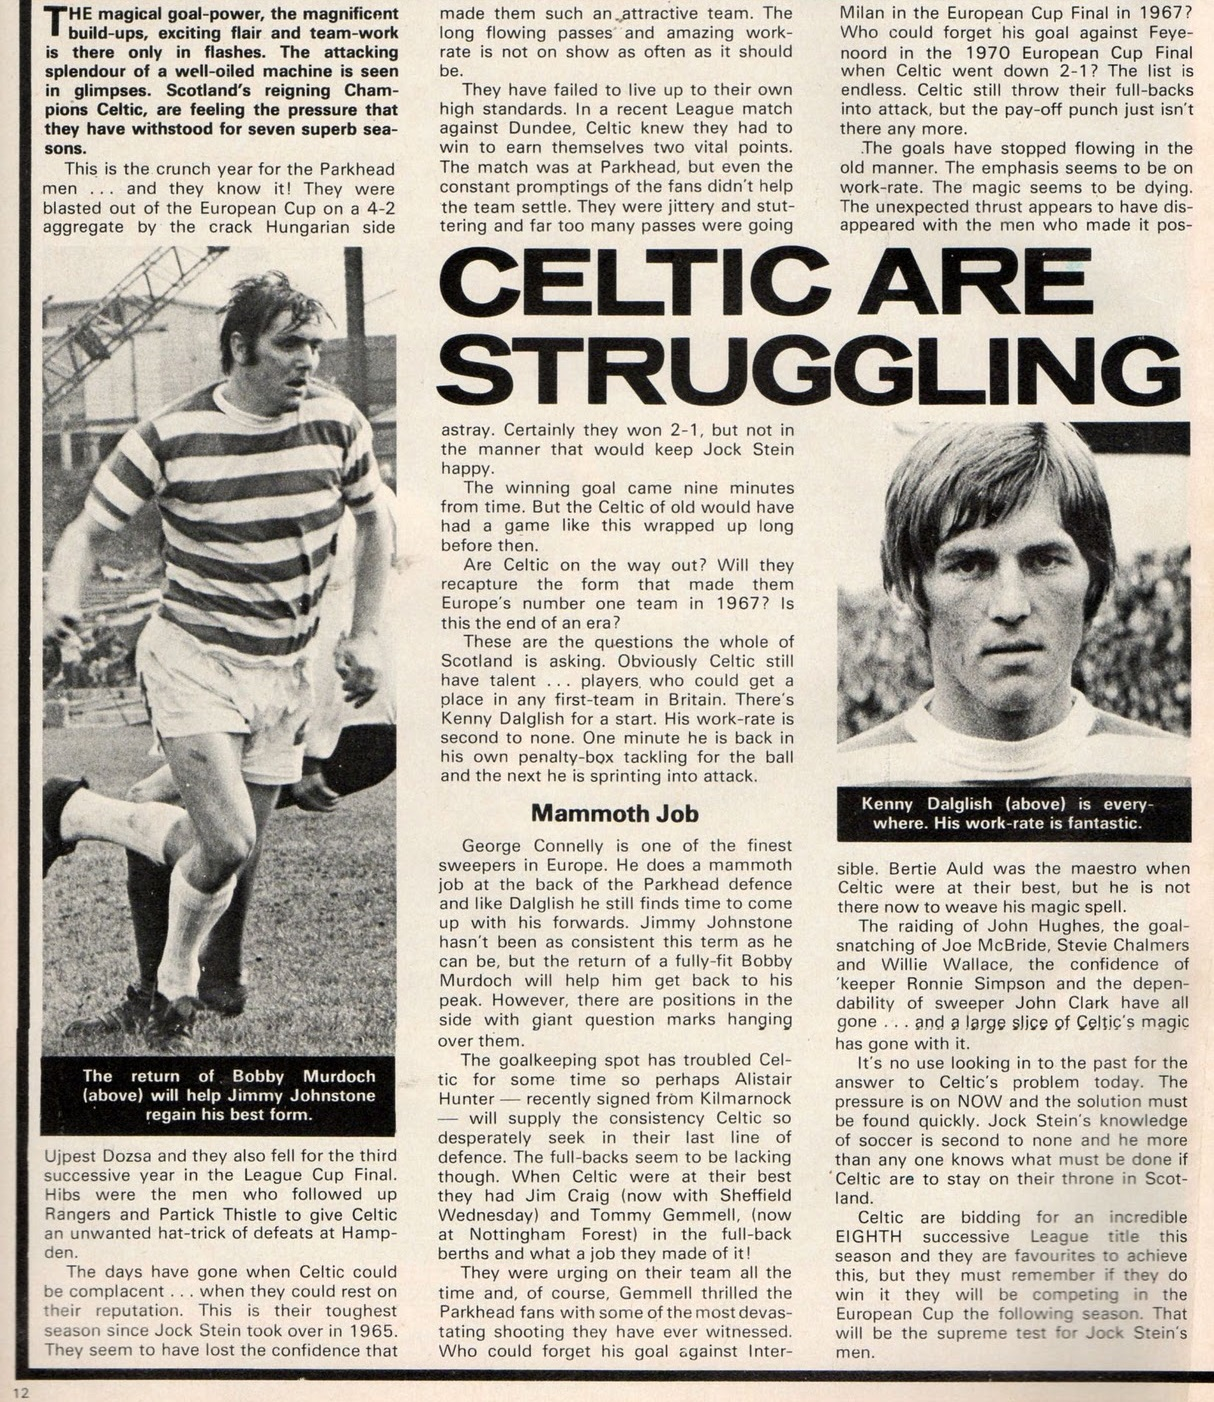 Celtic are struggling - from 15 September 1974